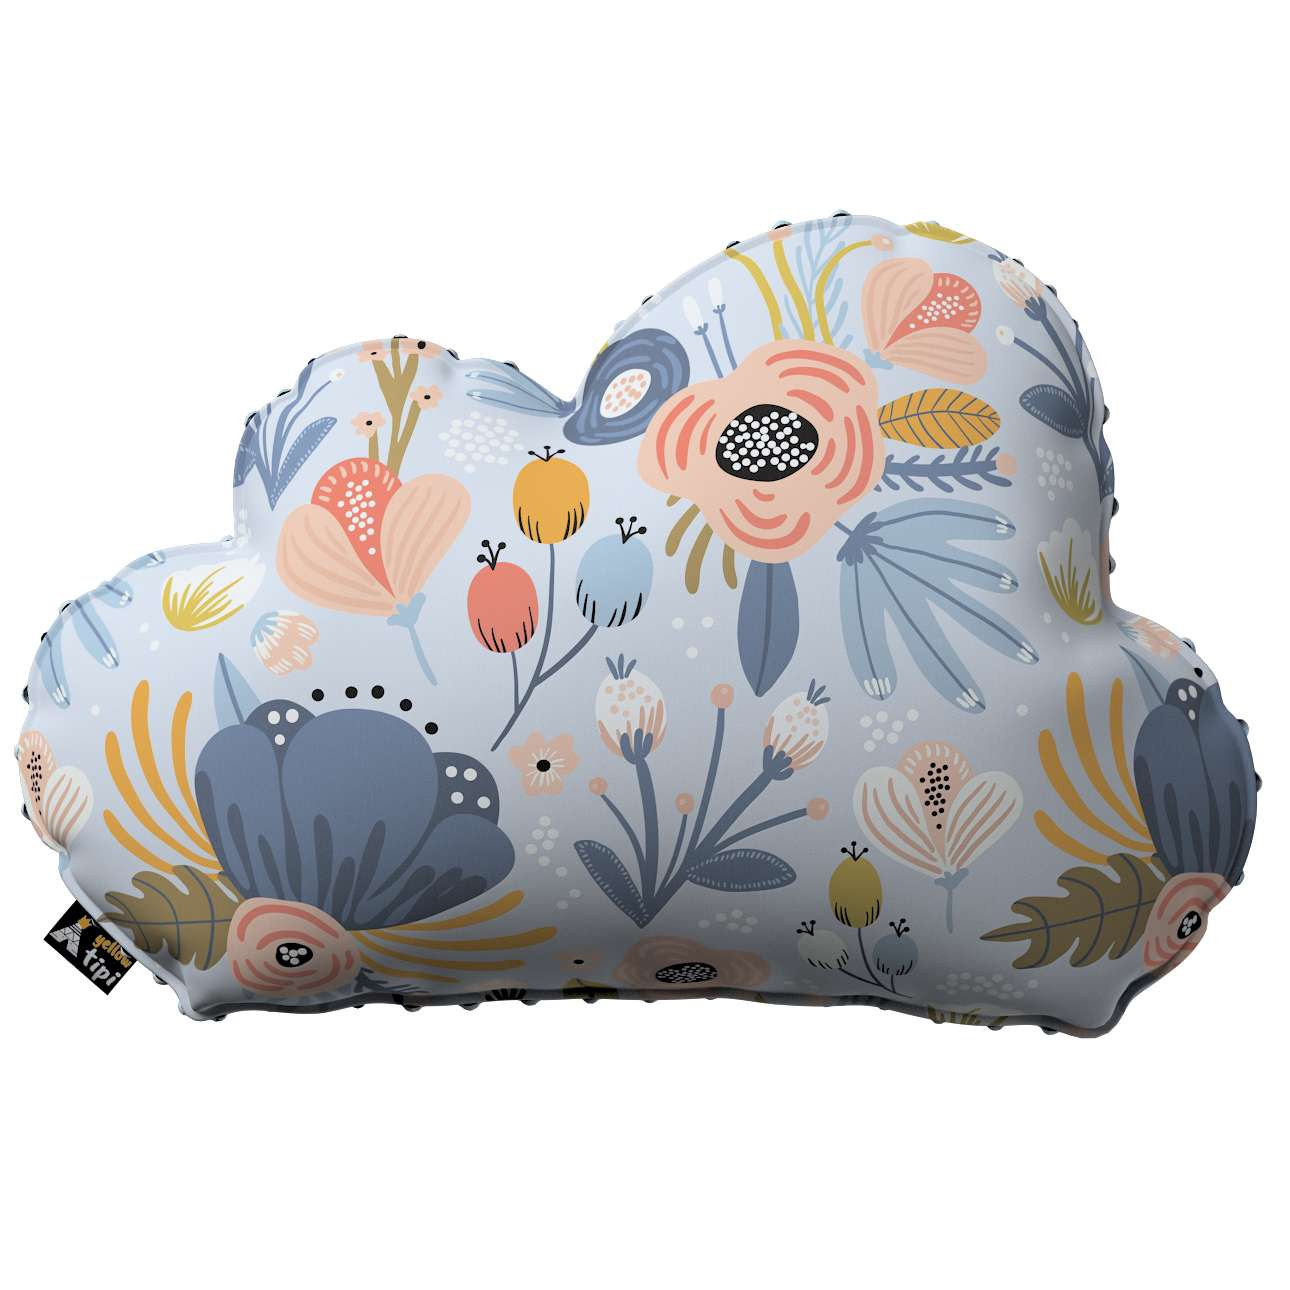 Soft Cloud pillow with minky in collection Magic Collection, fabric: 500-05